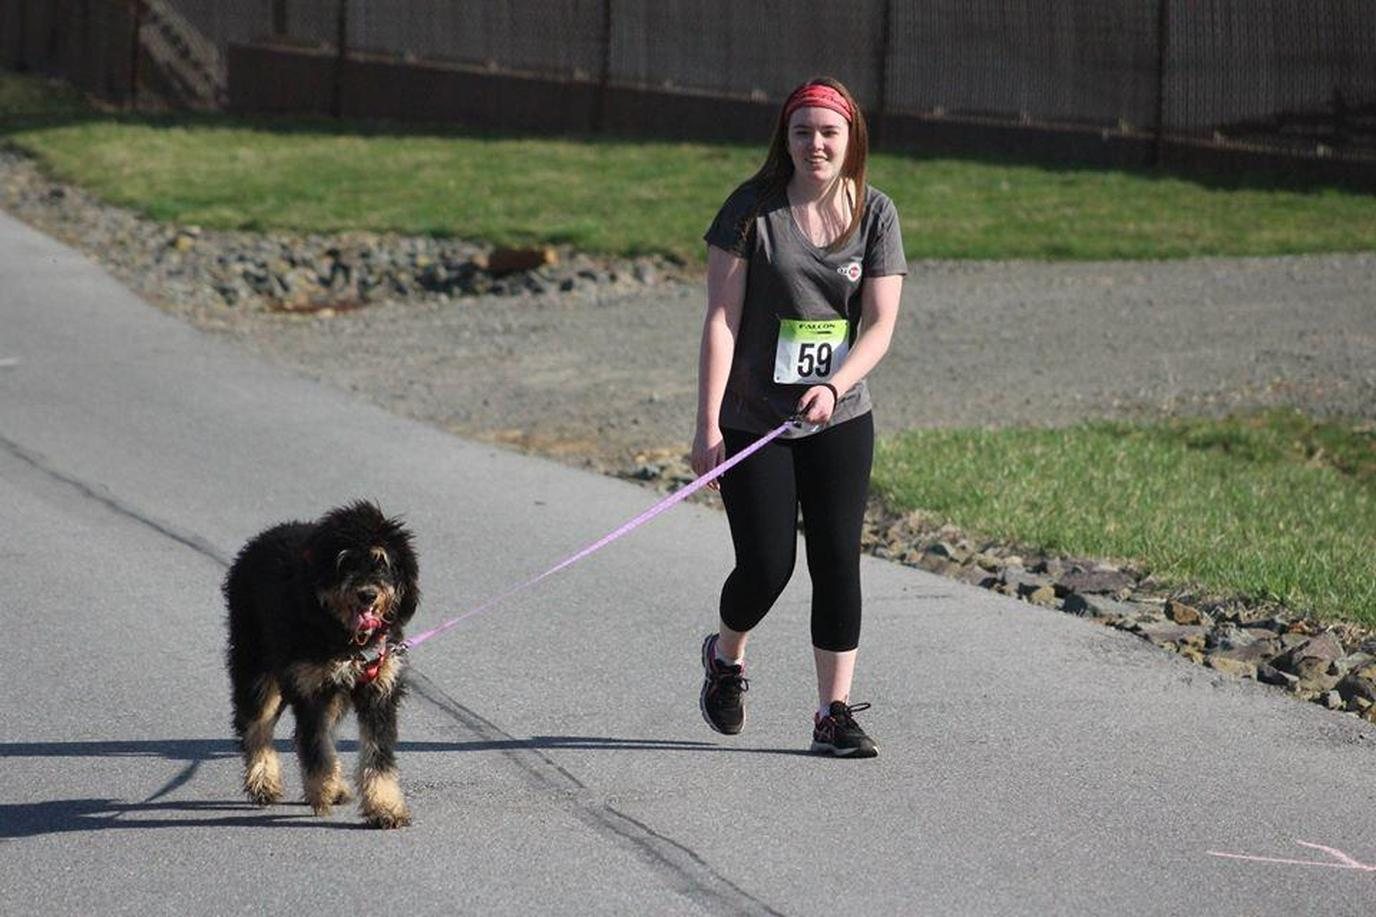 A Woman and a Fuzzy Dog Participate In a Dog-Friendly Spring Run.